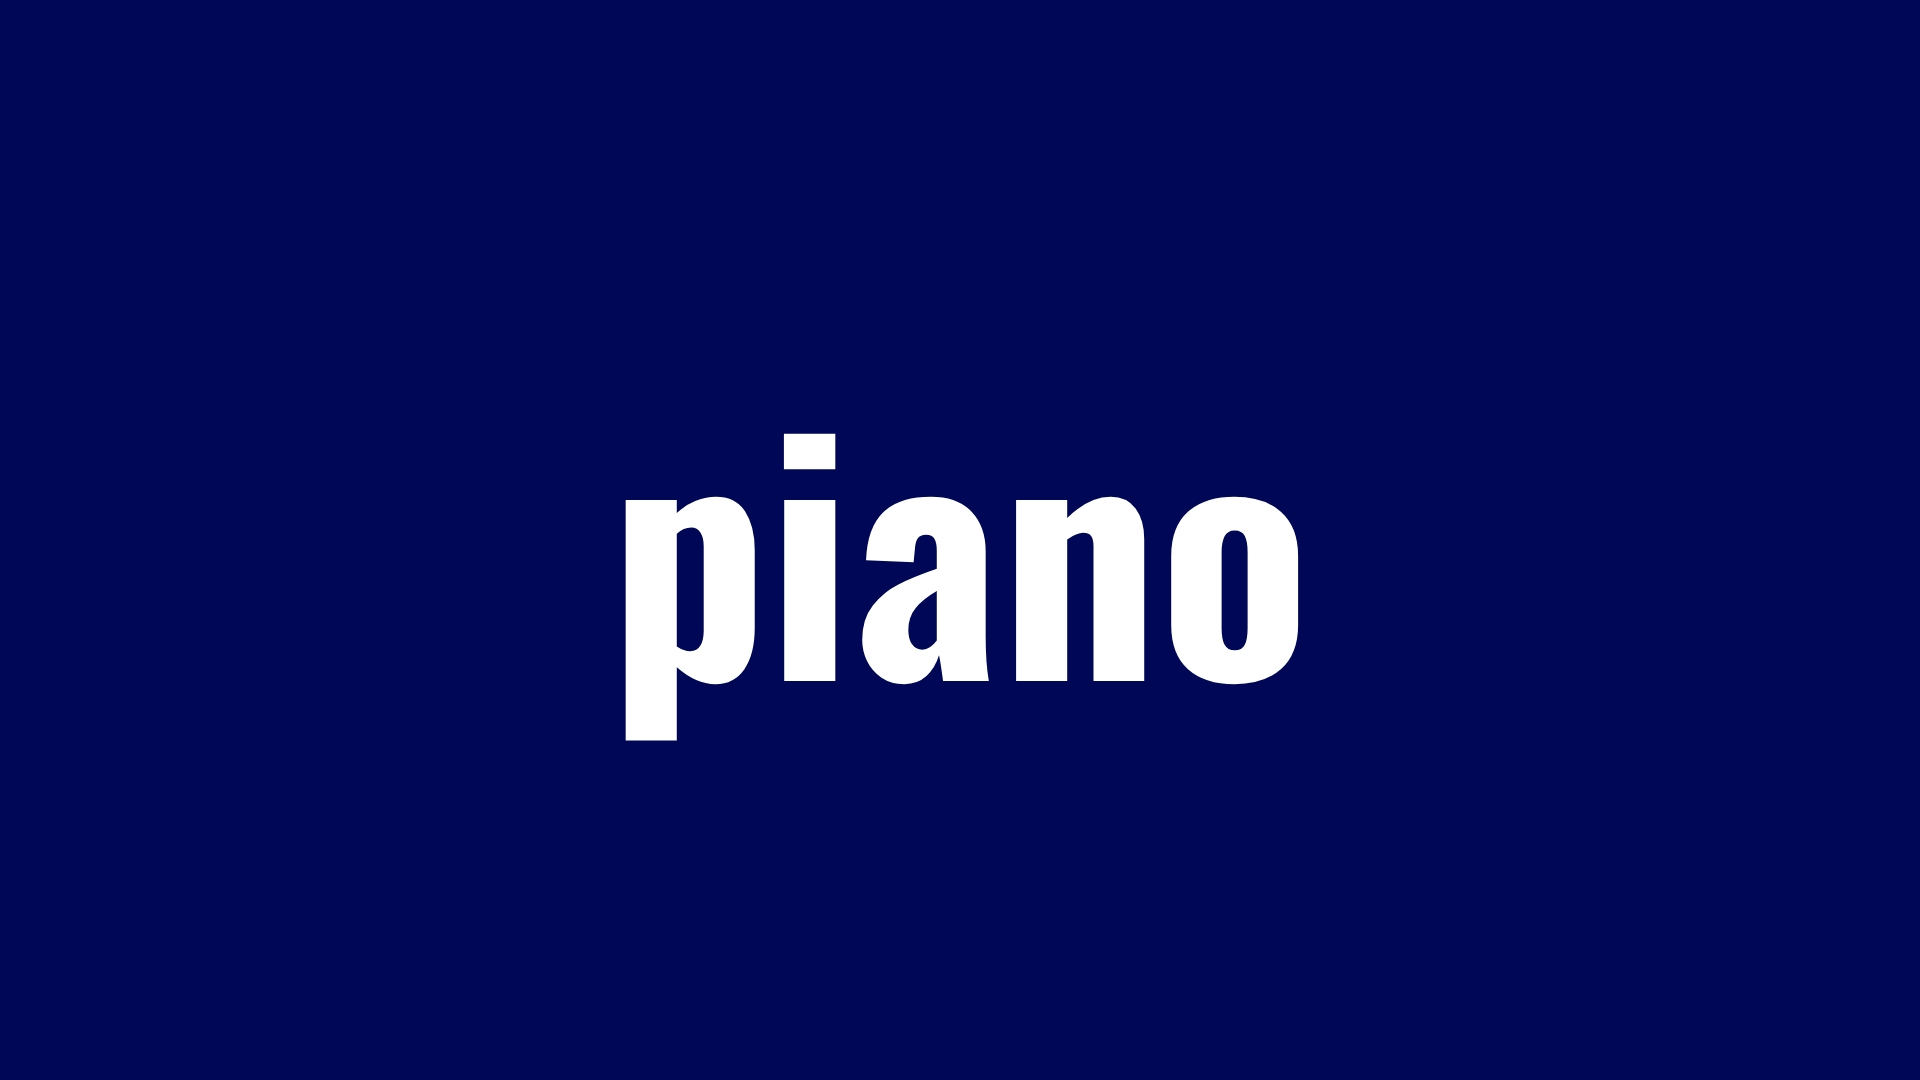 piano solid oswald for homepage.jpg